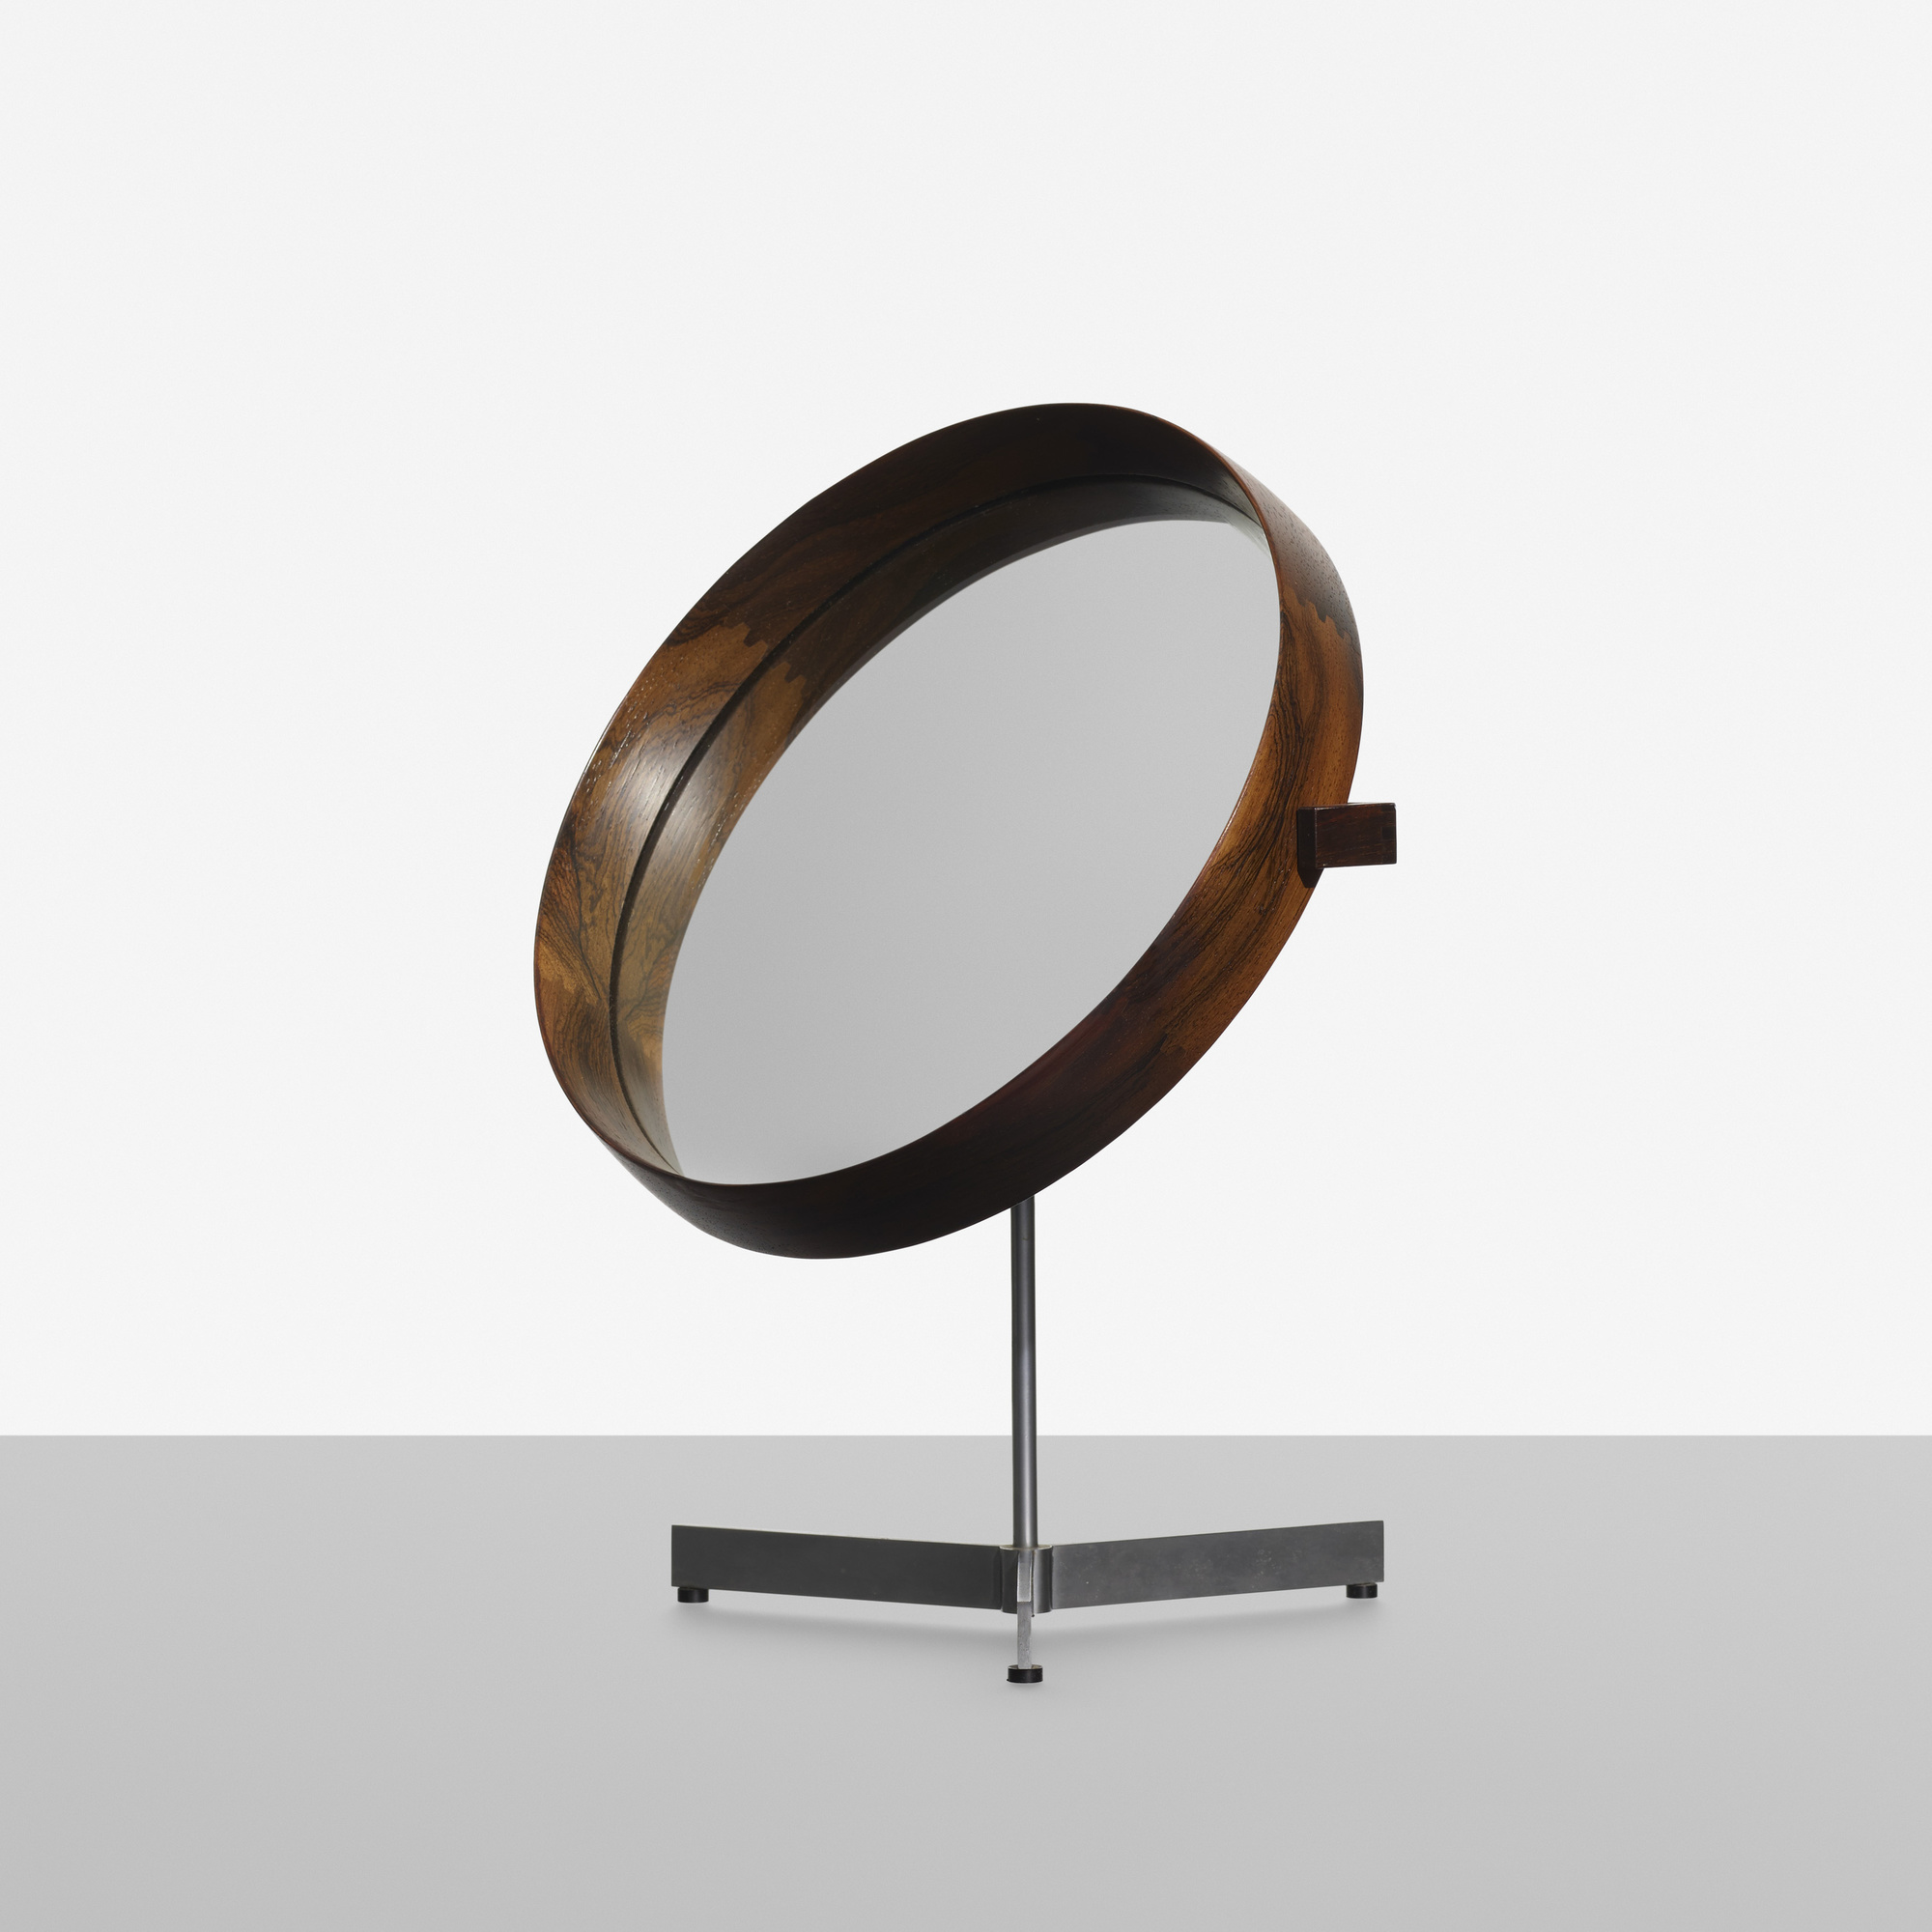 177: Uno and Östen Kristiansson / table mirror (1 of 2)